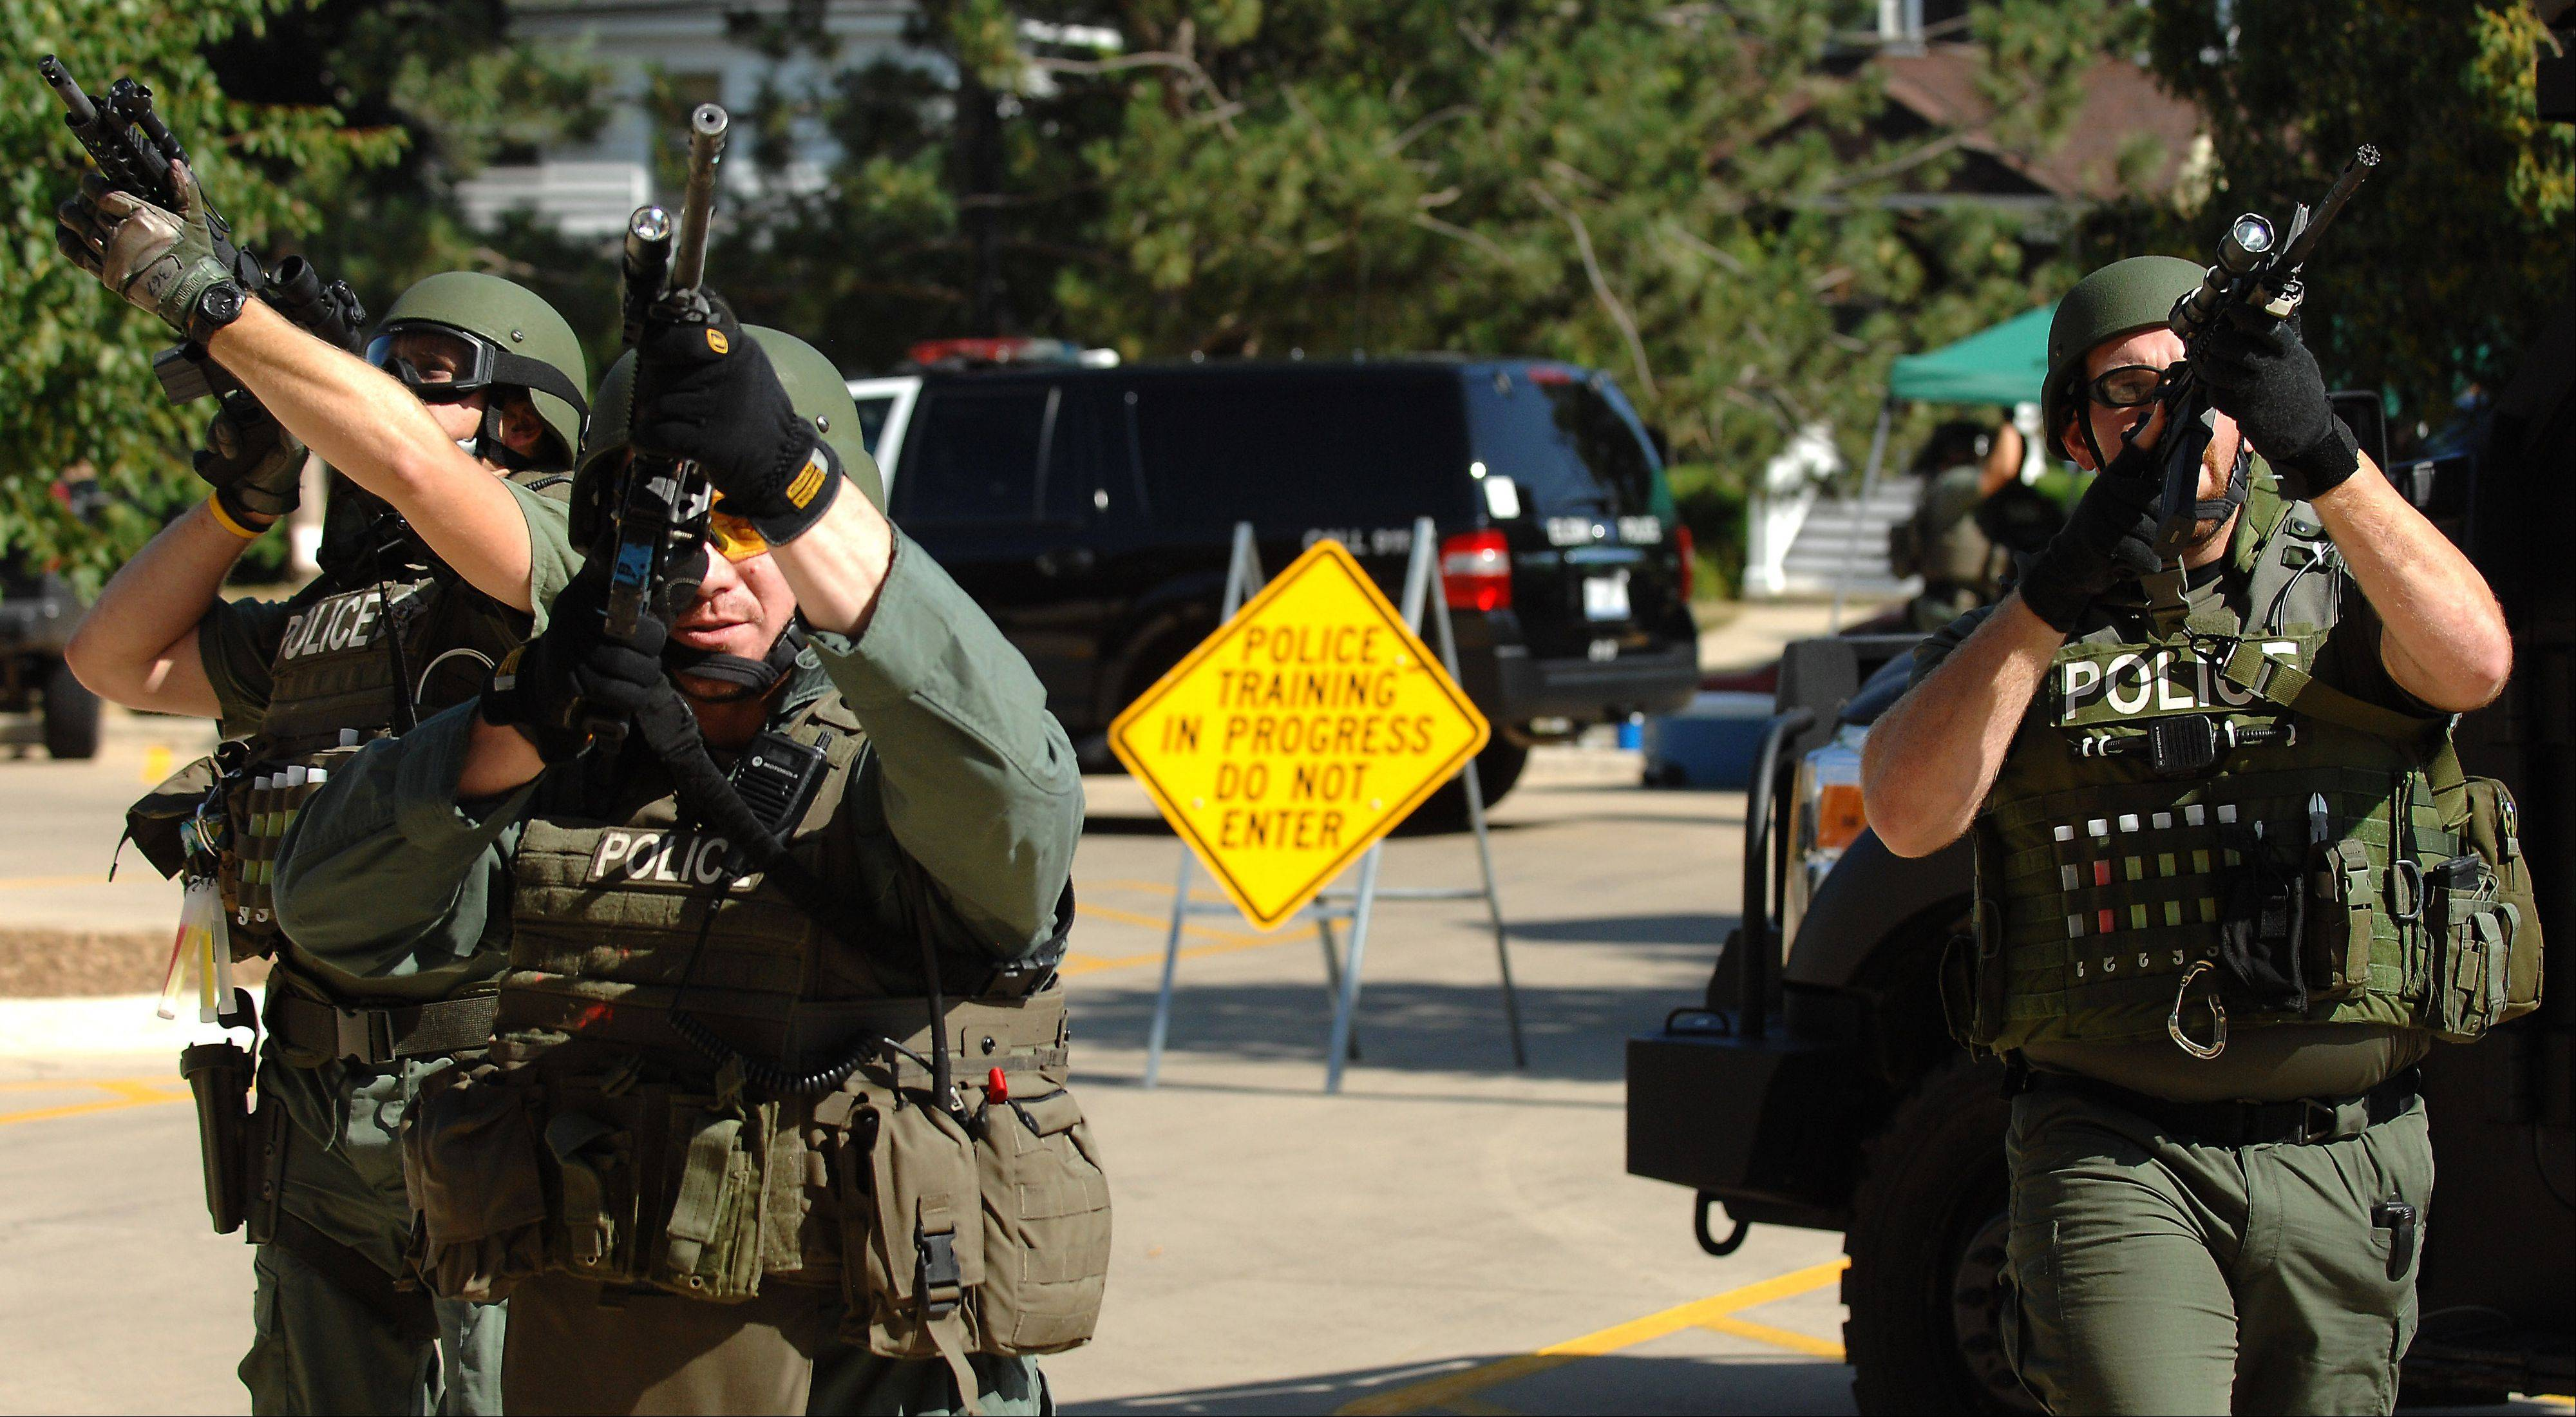 Elgin SWAT team members approach Gifford Street High School in Elgin during a training exercise Tuesday. The scenario involved a call about multiple school shooters.